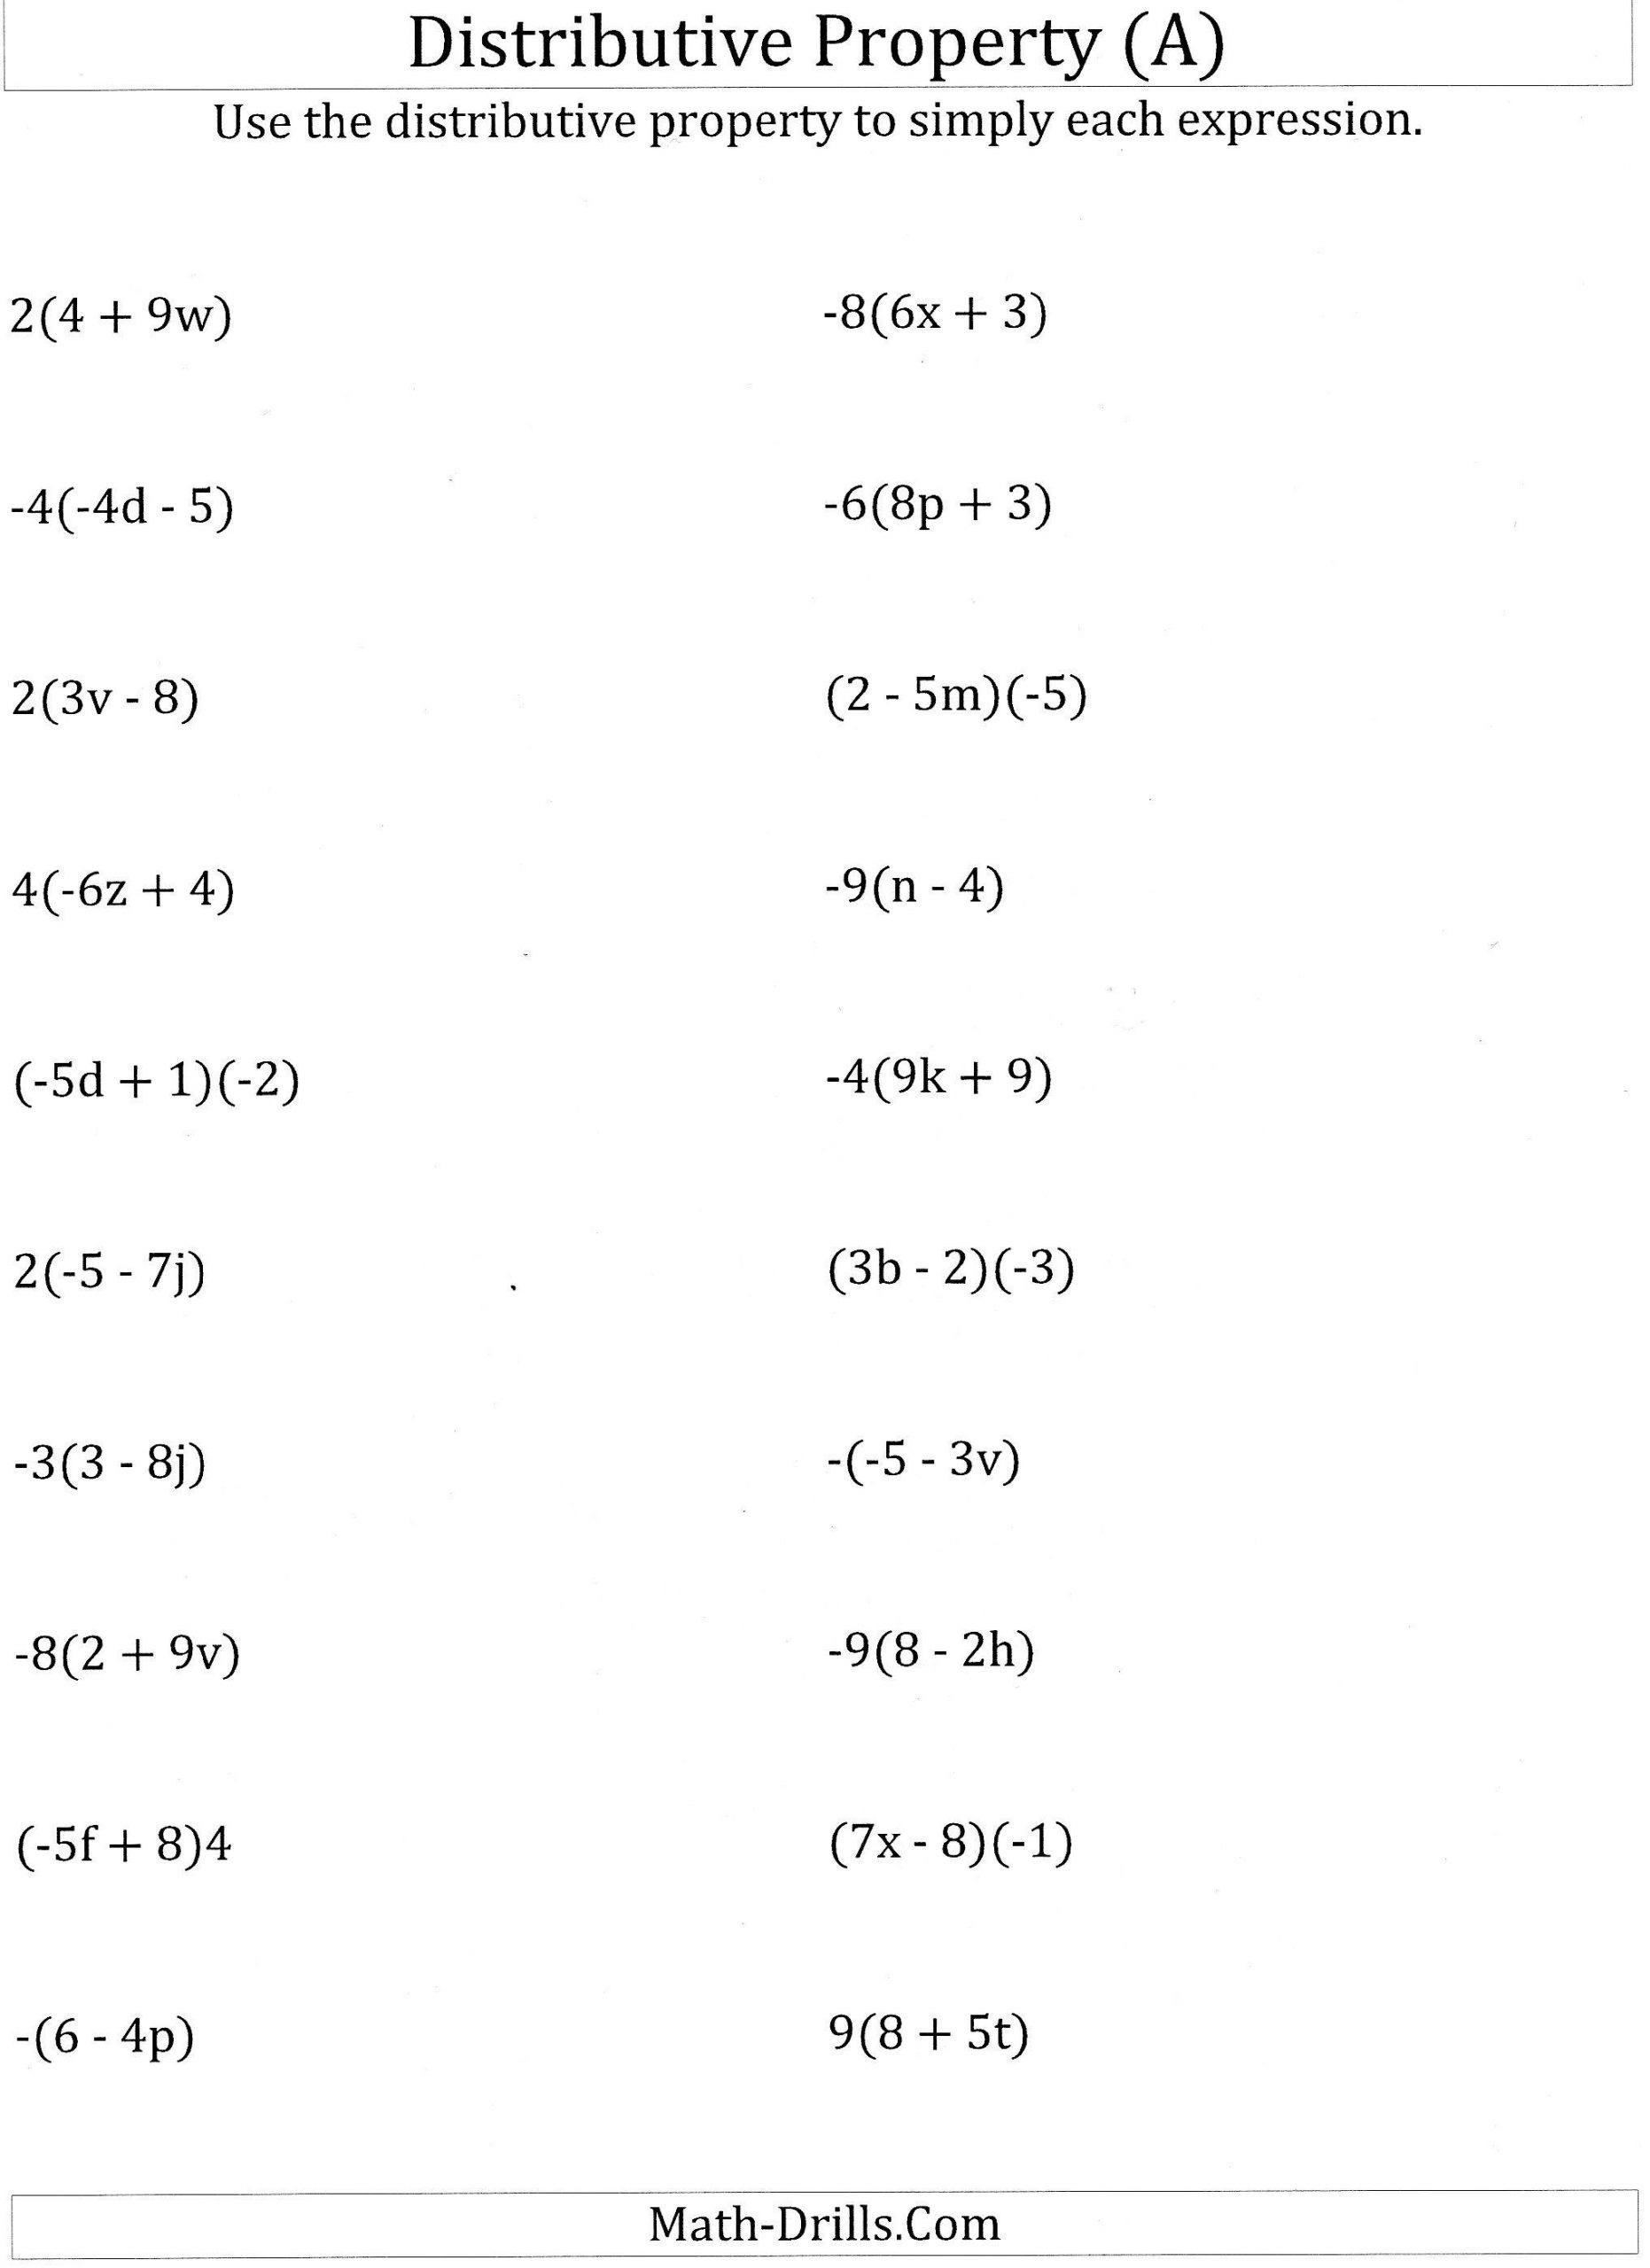 Distributive Property Worksheets 7th Grade Worksheet Math Worksheets Distributive Property